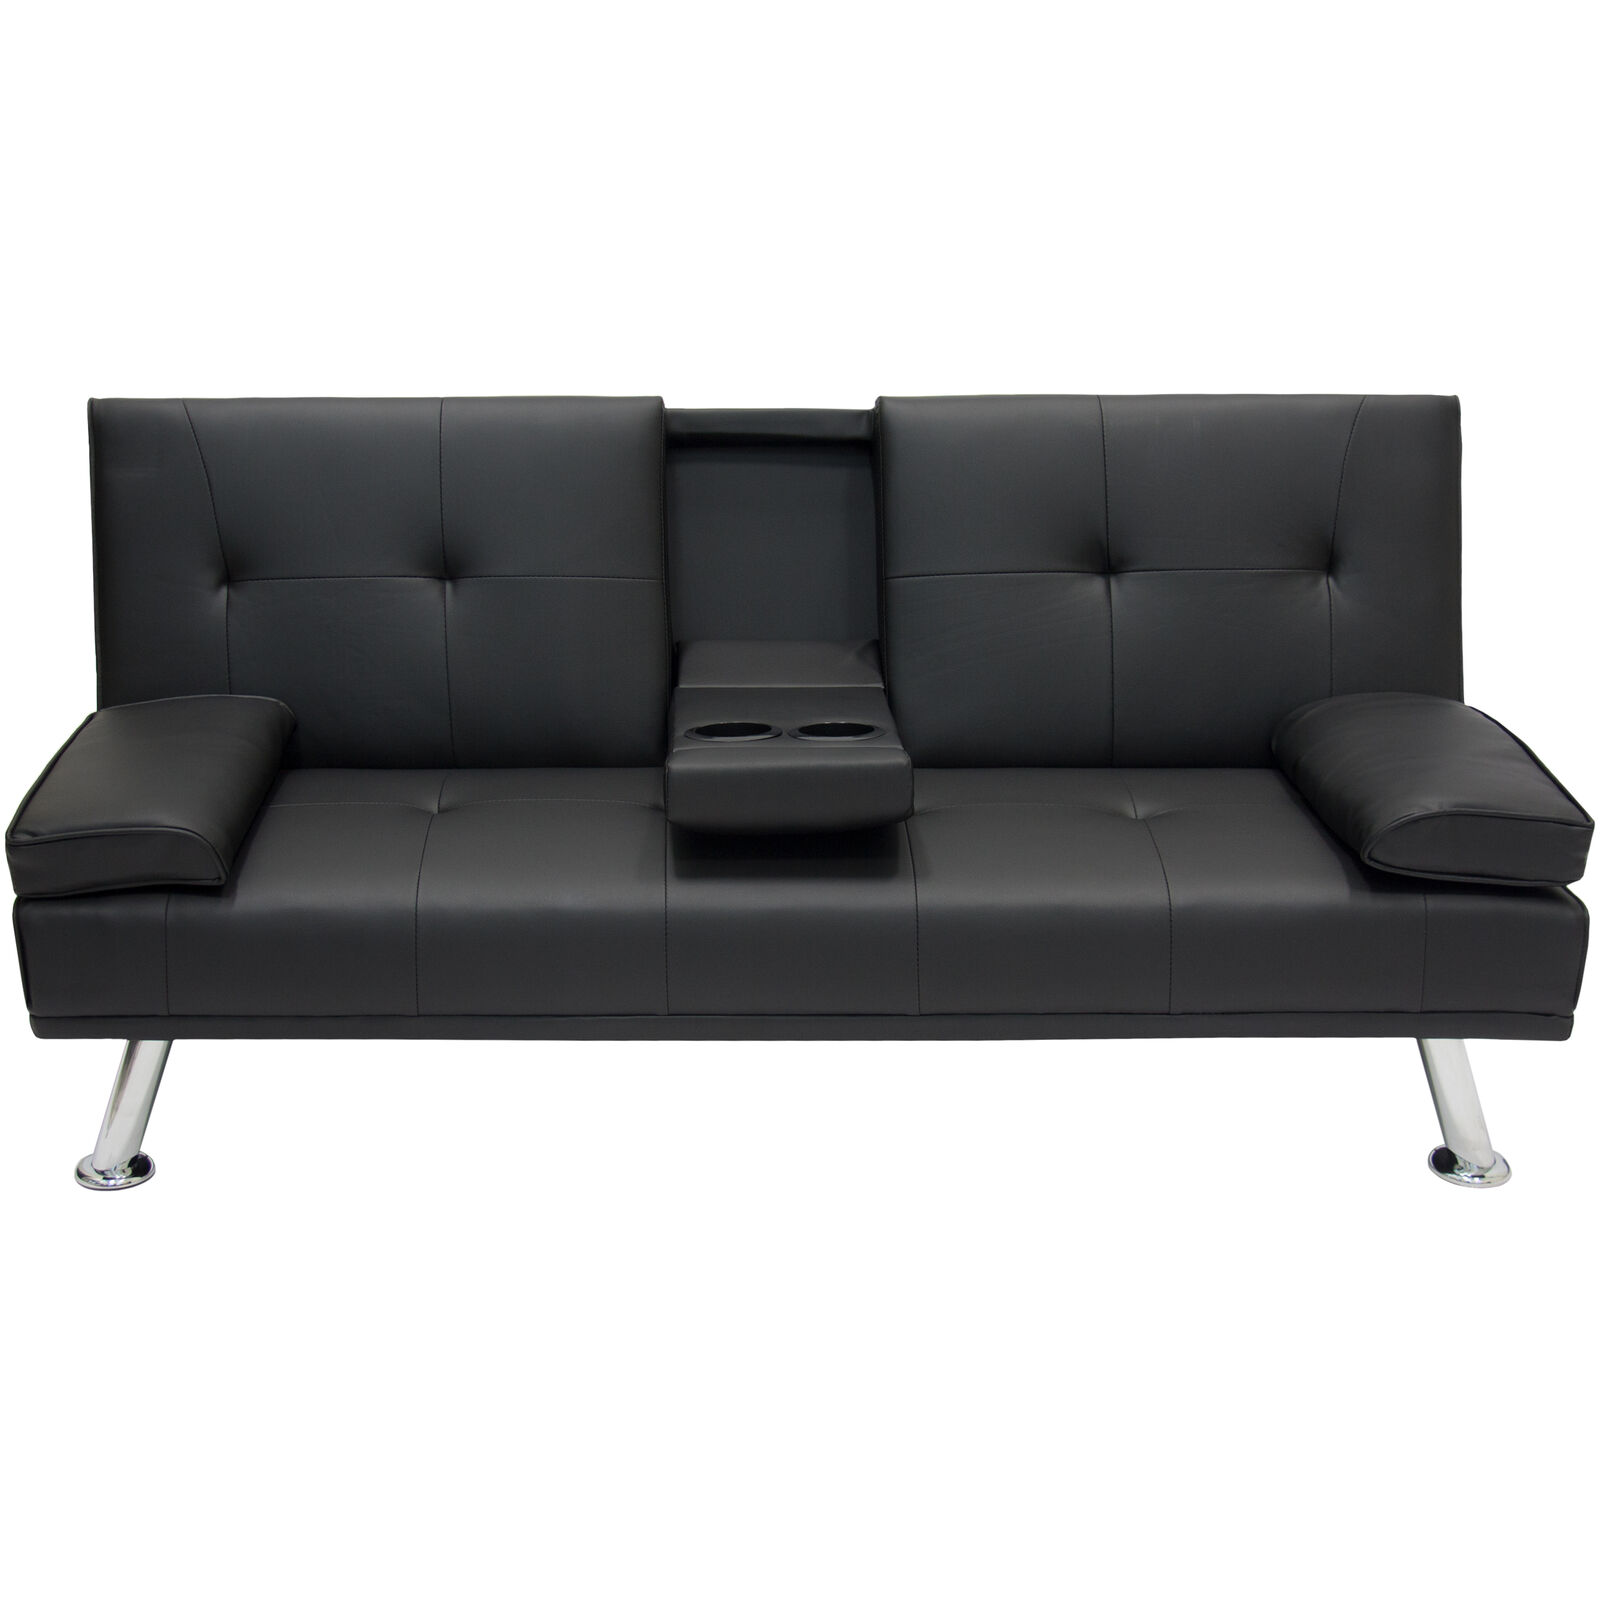 kitchen top futon amazon chaise dining com brent dhp futons rated dp